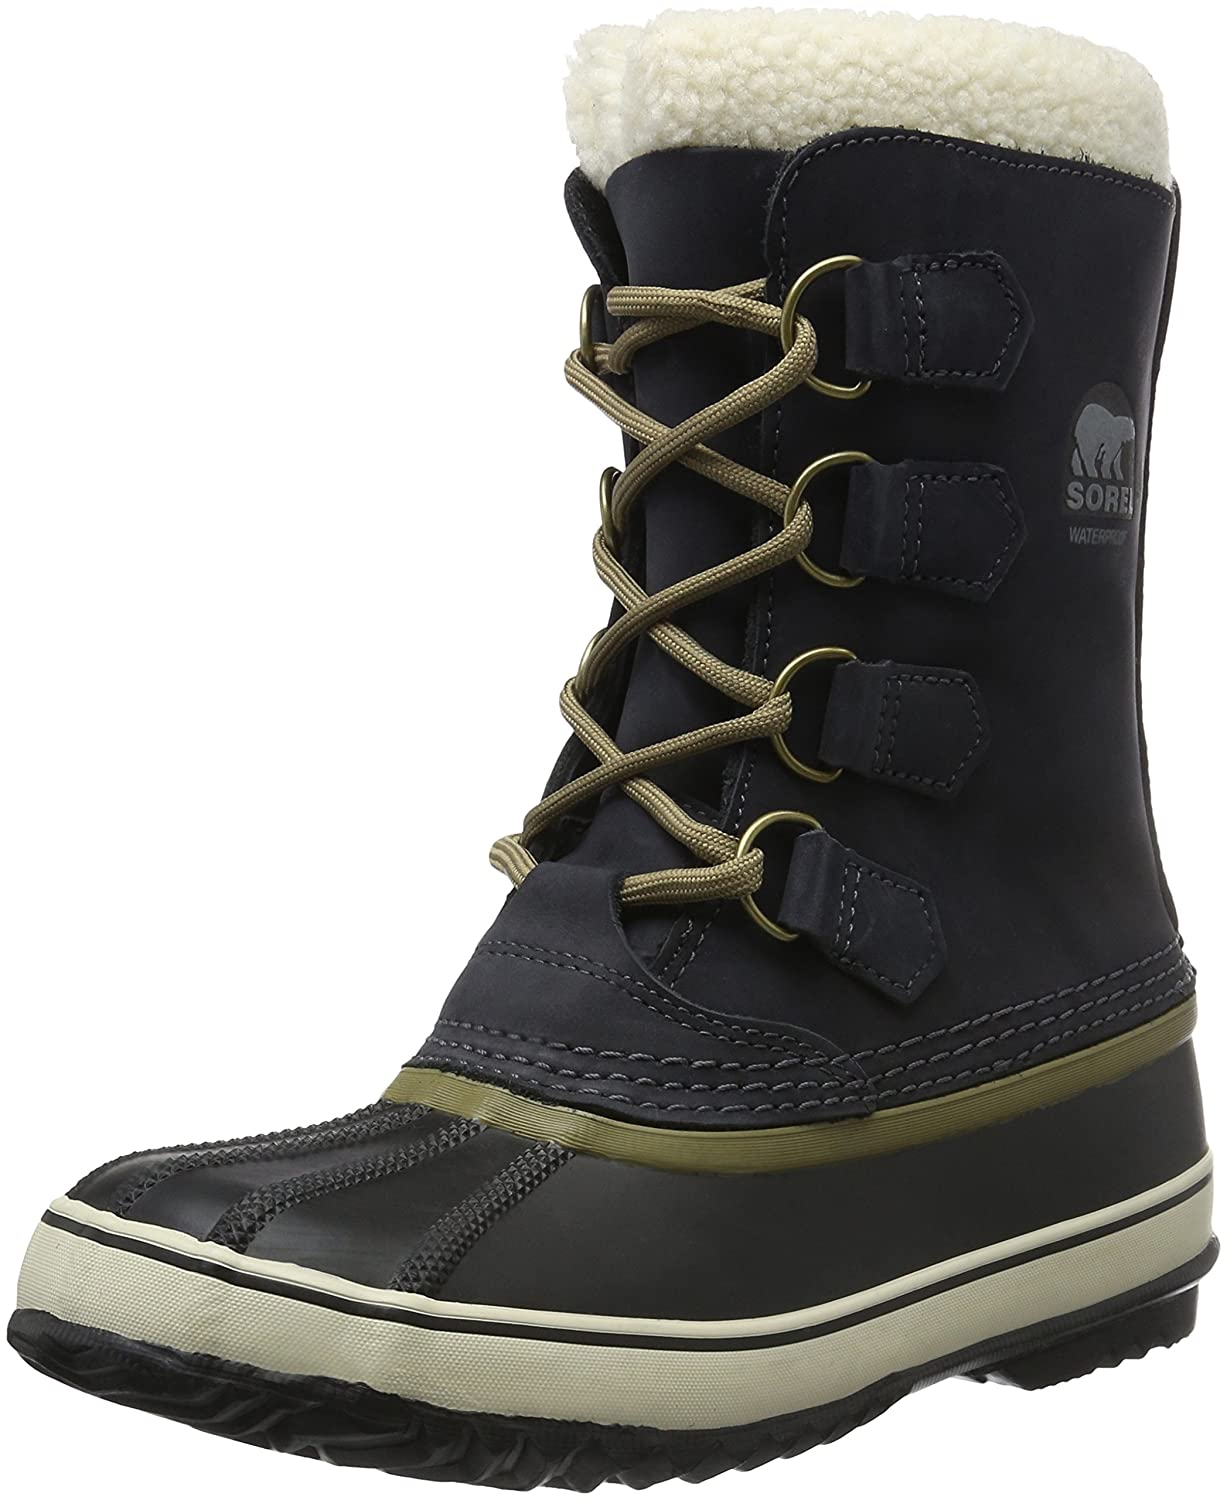 Amazon | Sorel Women's 1964 Pac 2 Waterproof Winter Boot | Snow Boots